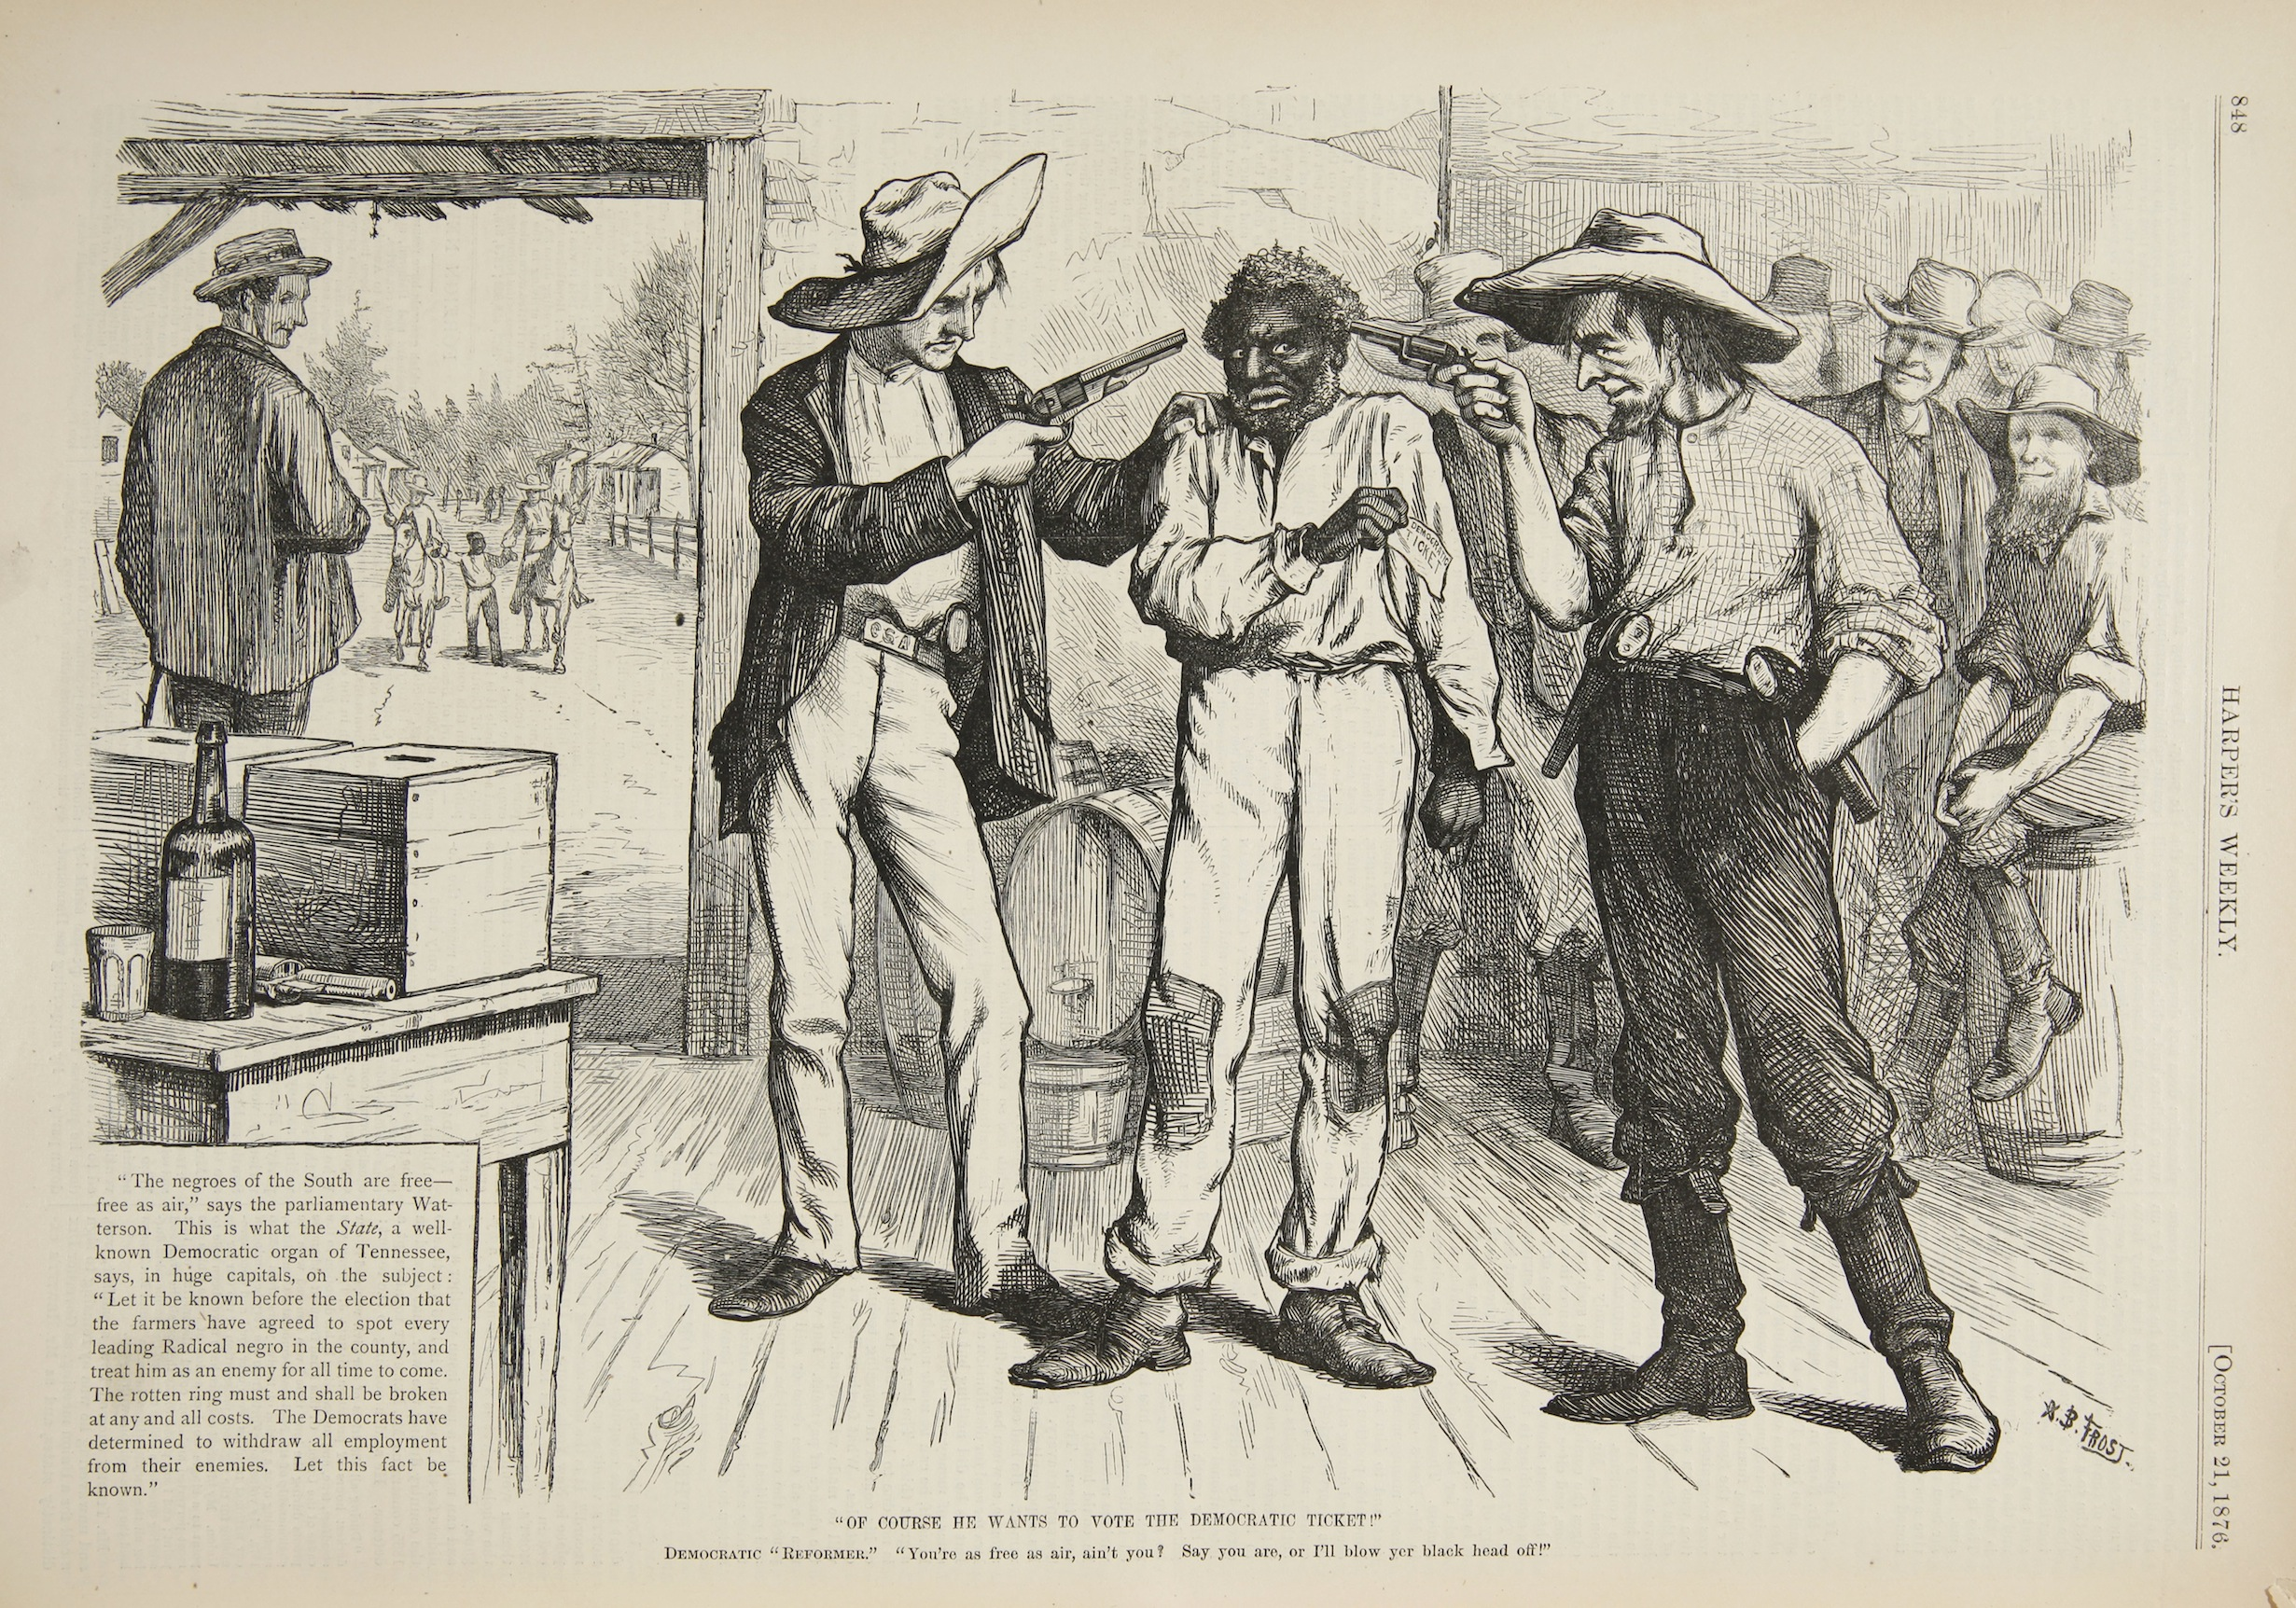 blacks and reconstruction - black reconstruction in the south: the freedpeople and the economics of land and labor professor blight begins this lecture in washington, where the passage of the first reconstruction act.